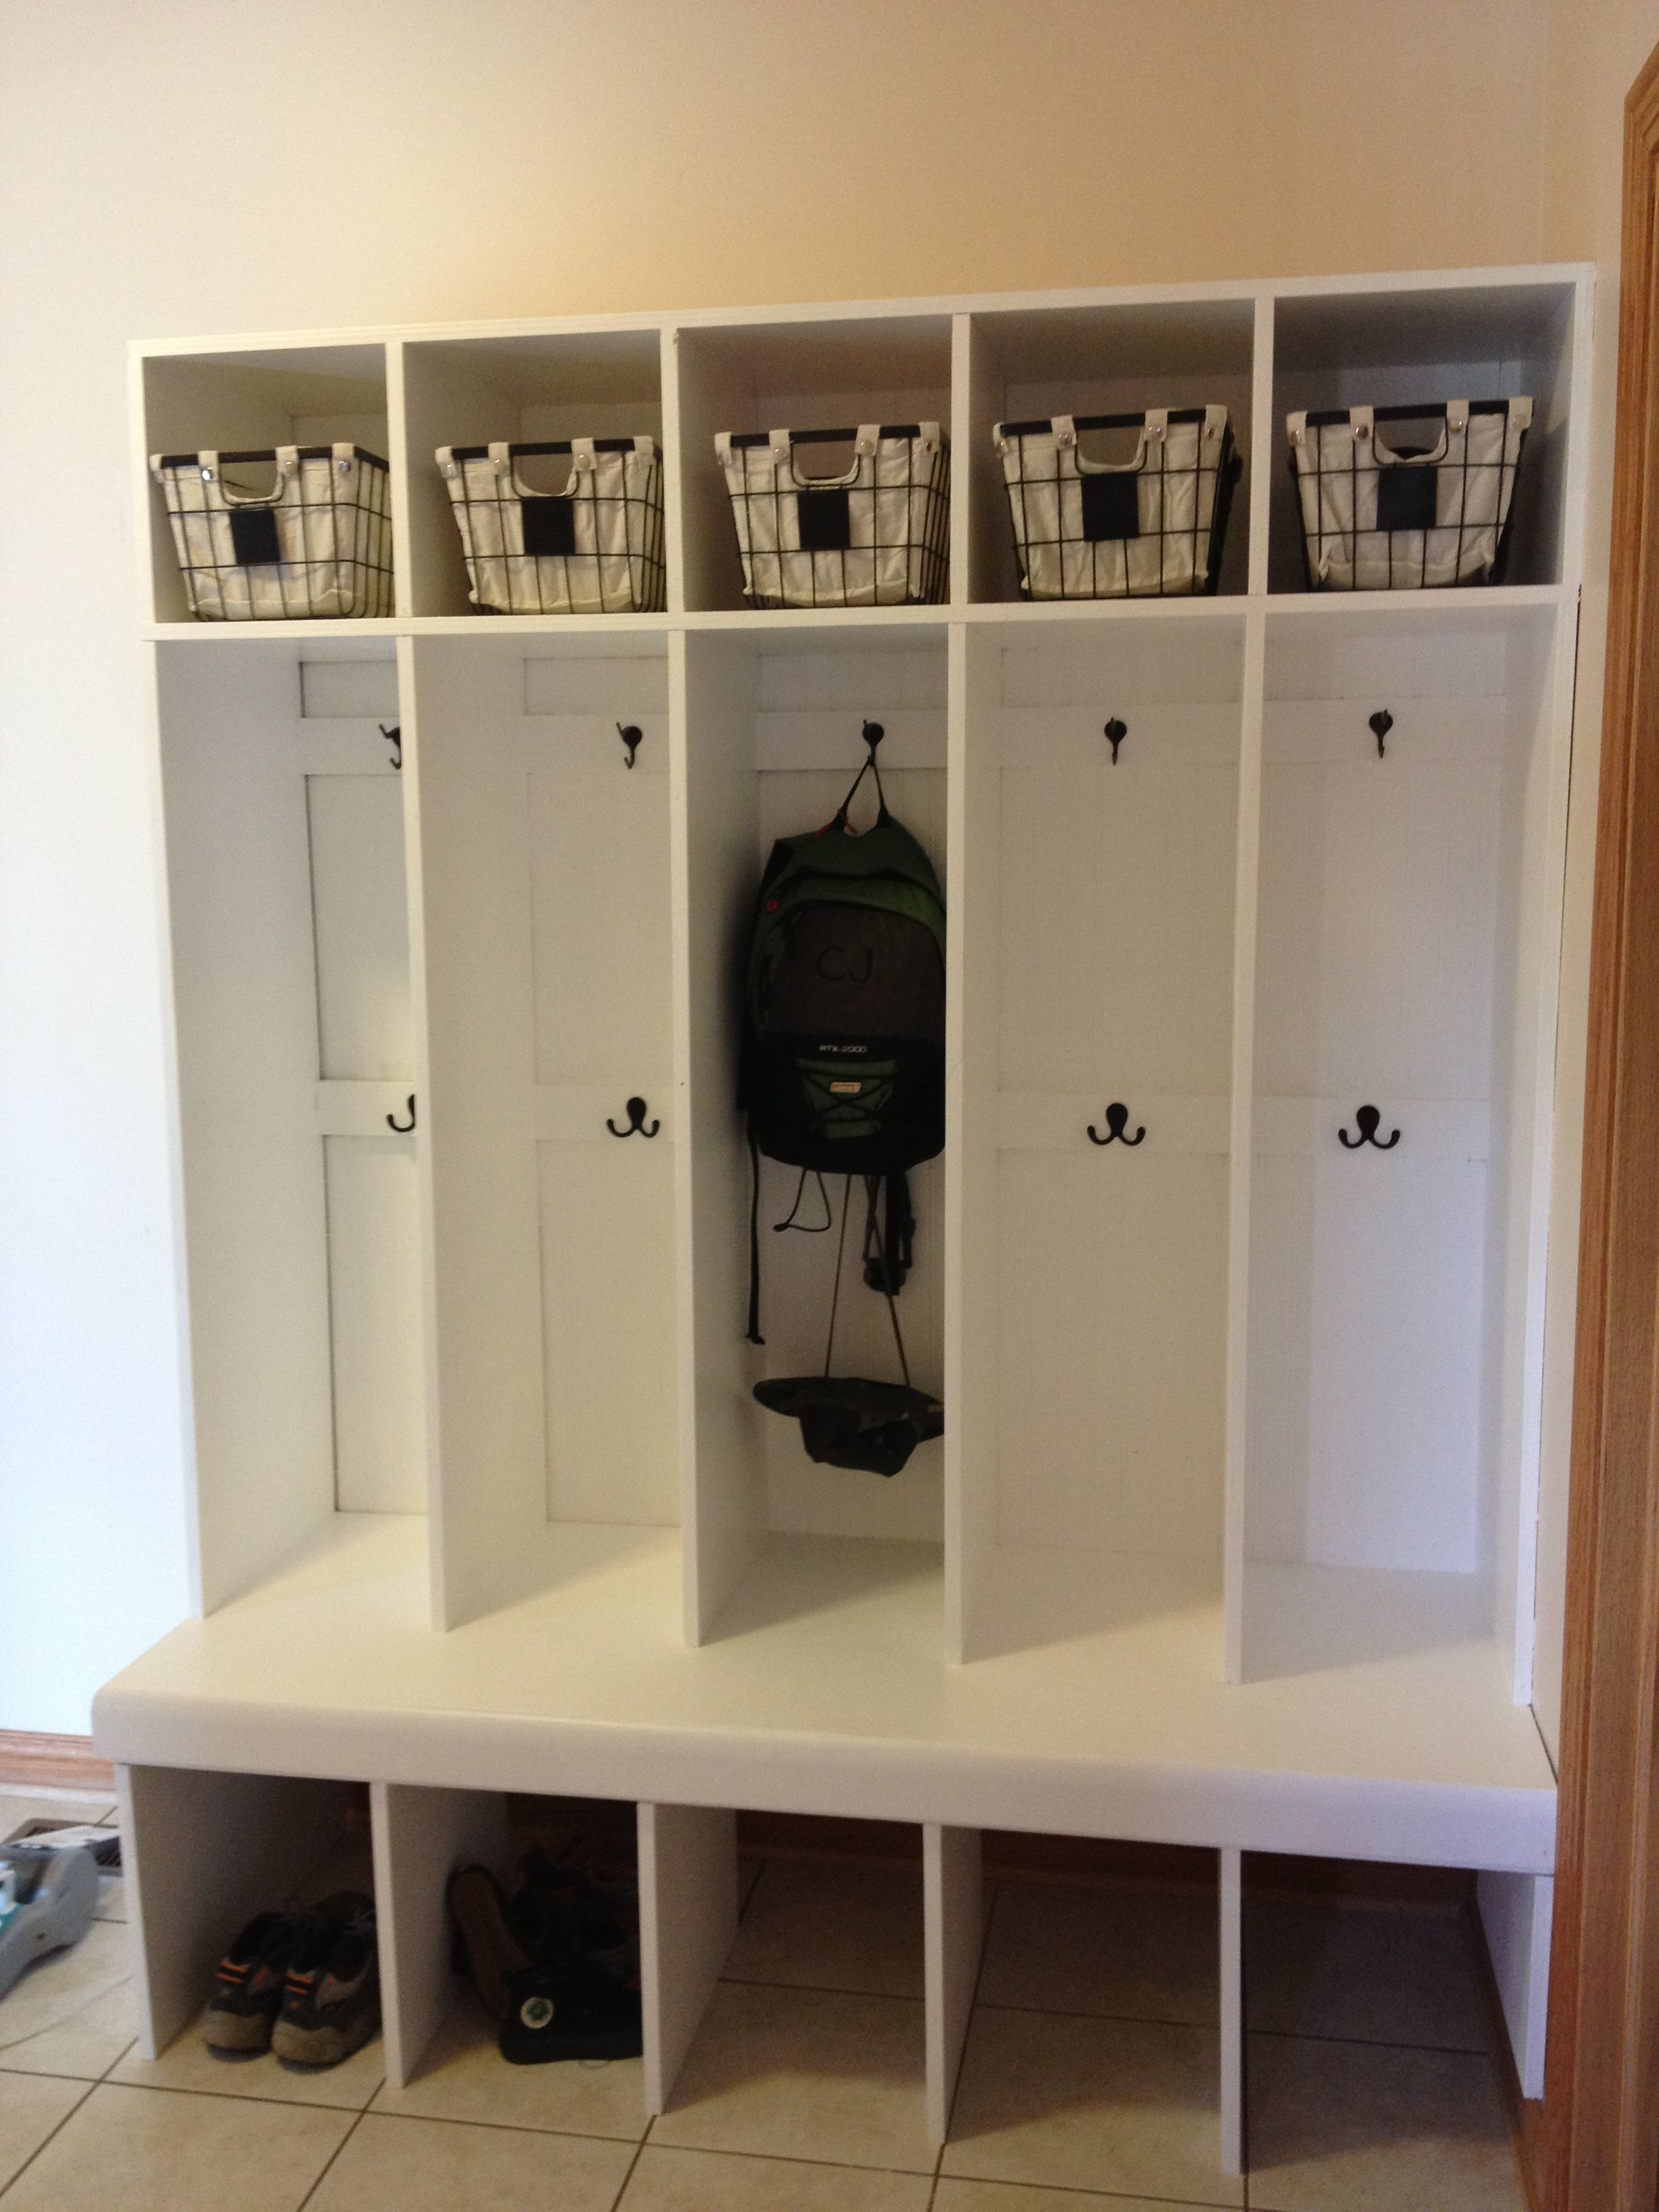 Mudroom Locker System Built In One Weekend